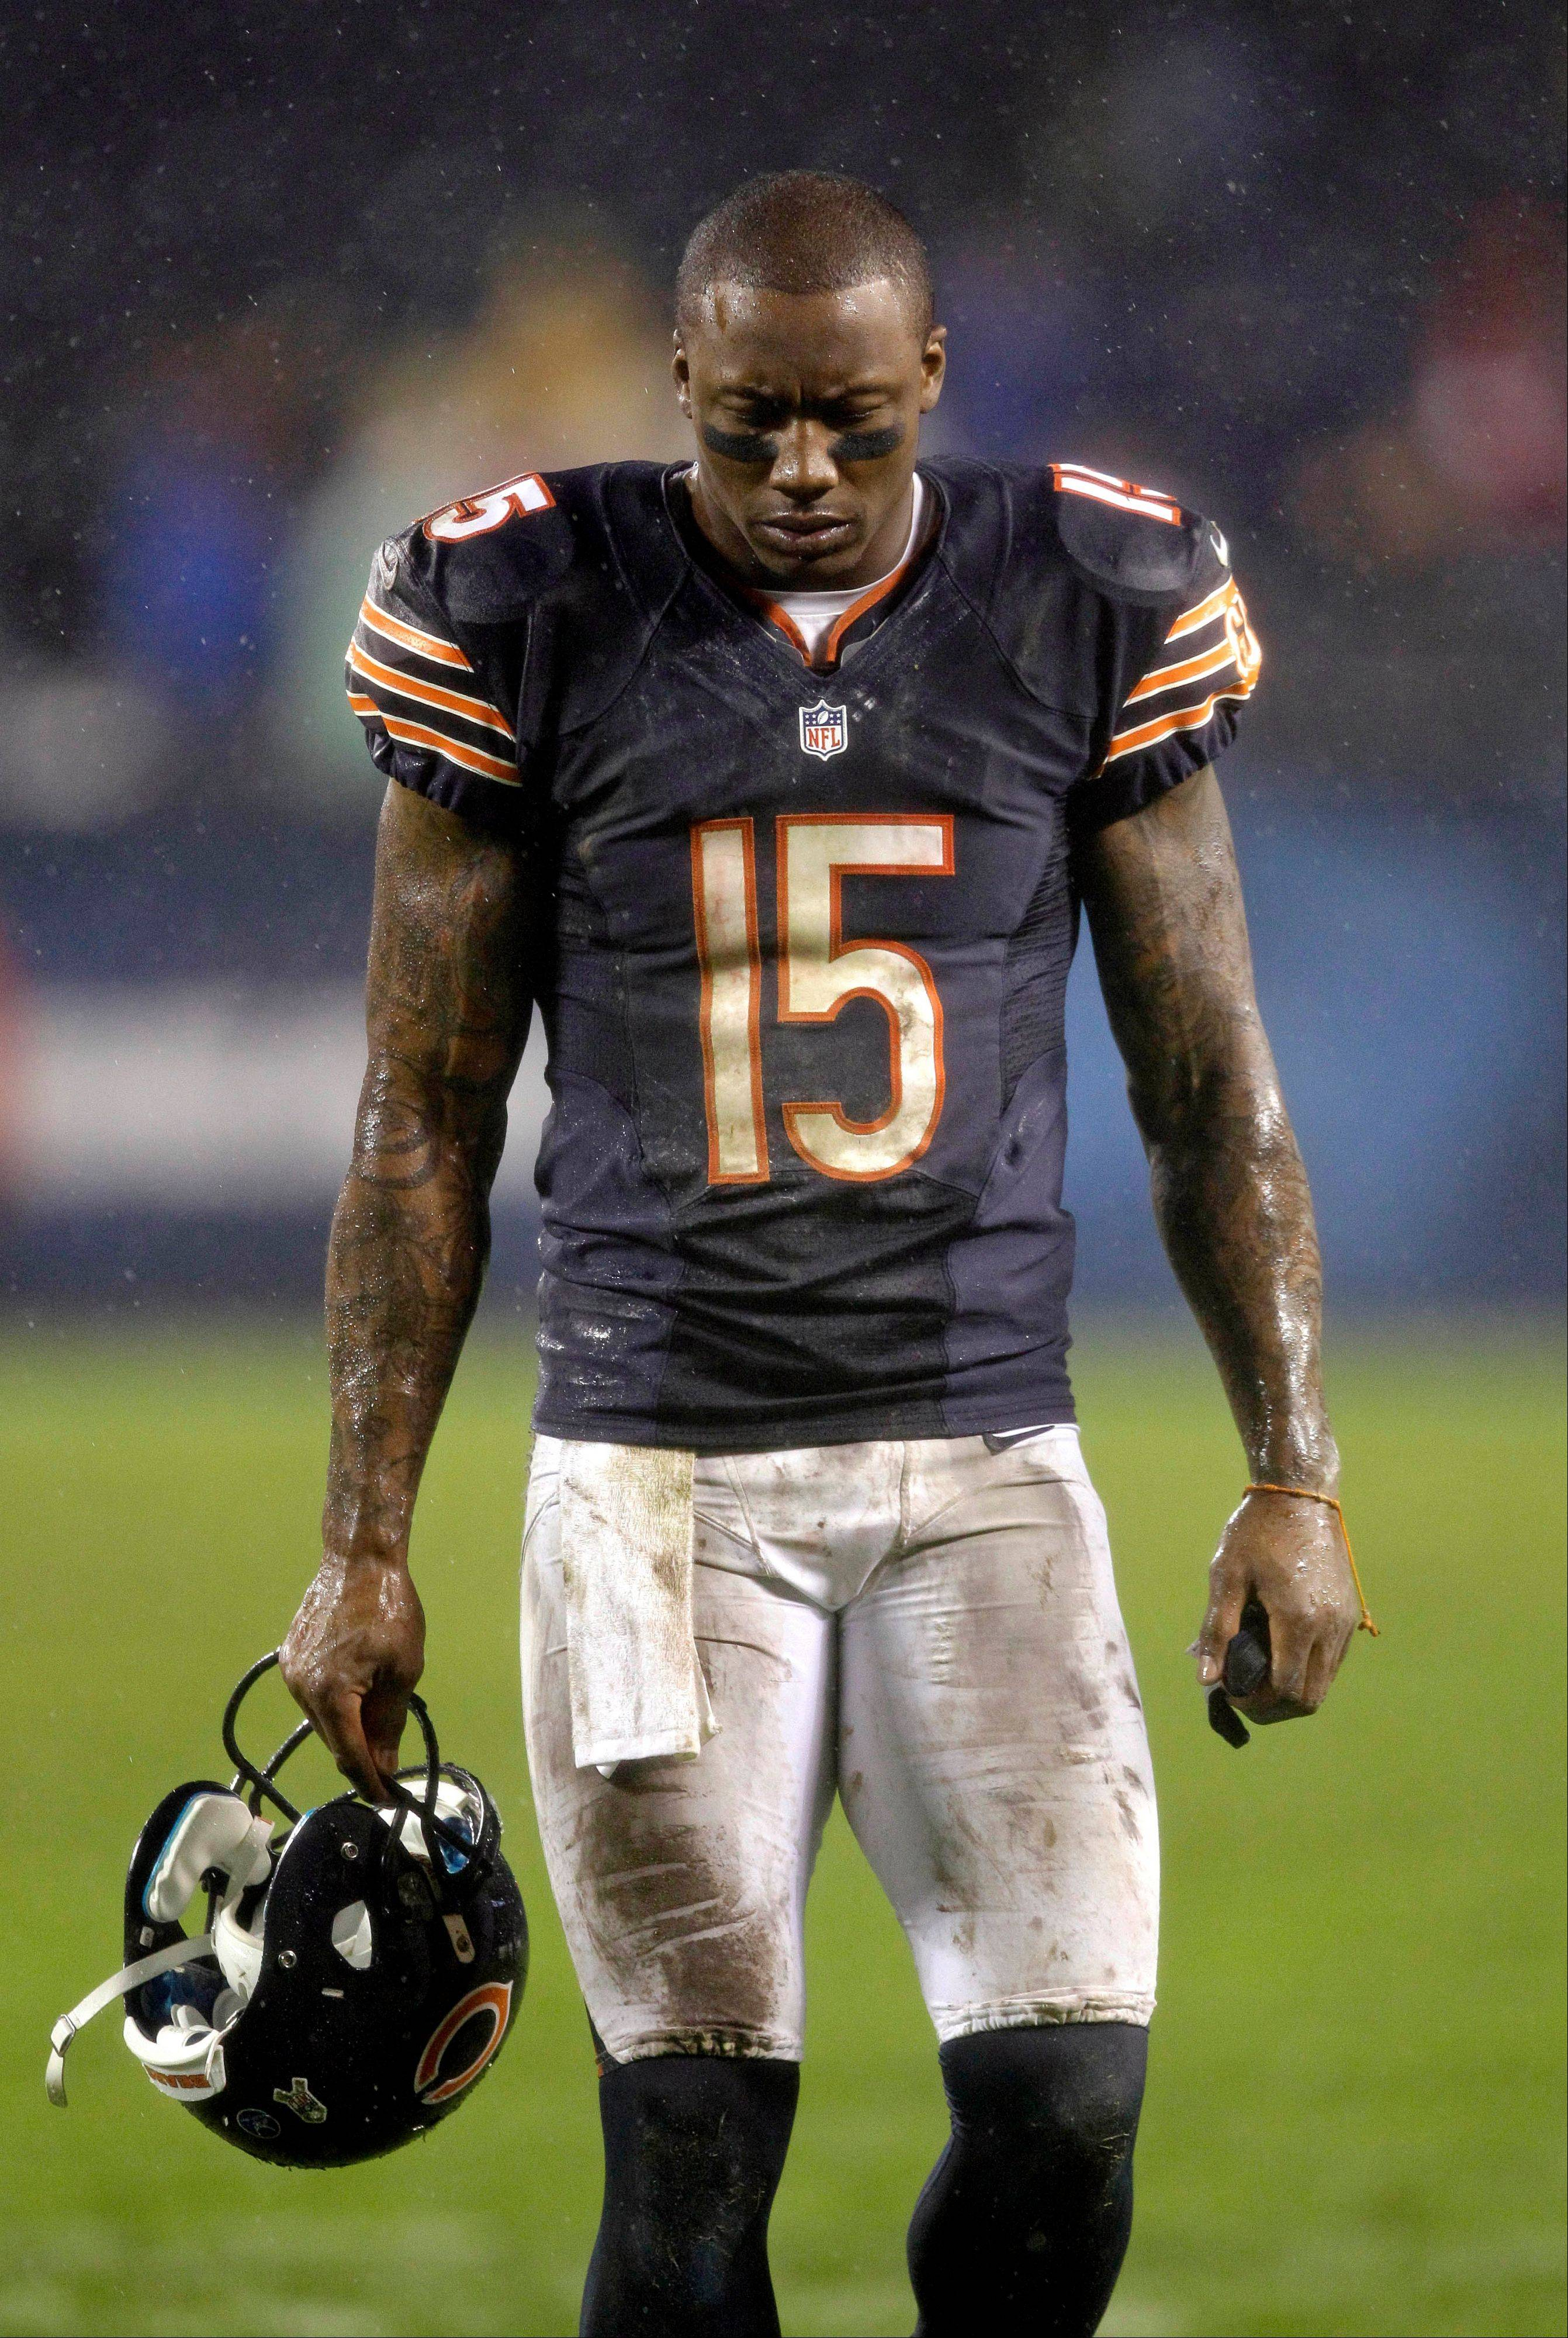 If he hits 1,000 yards receiving, it would be the seventh straight season that Brandon Marshall reached that milestone.